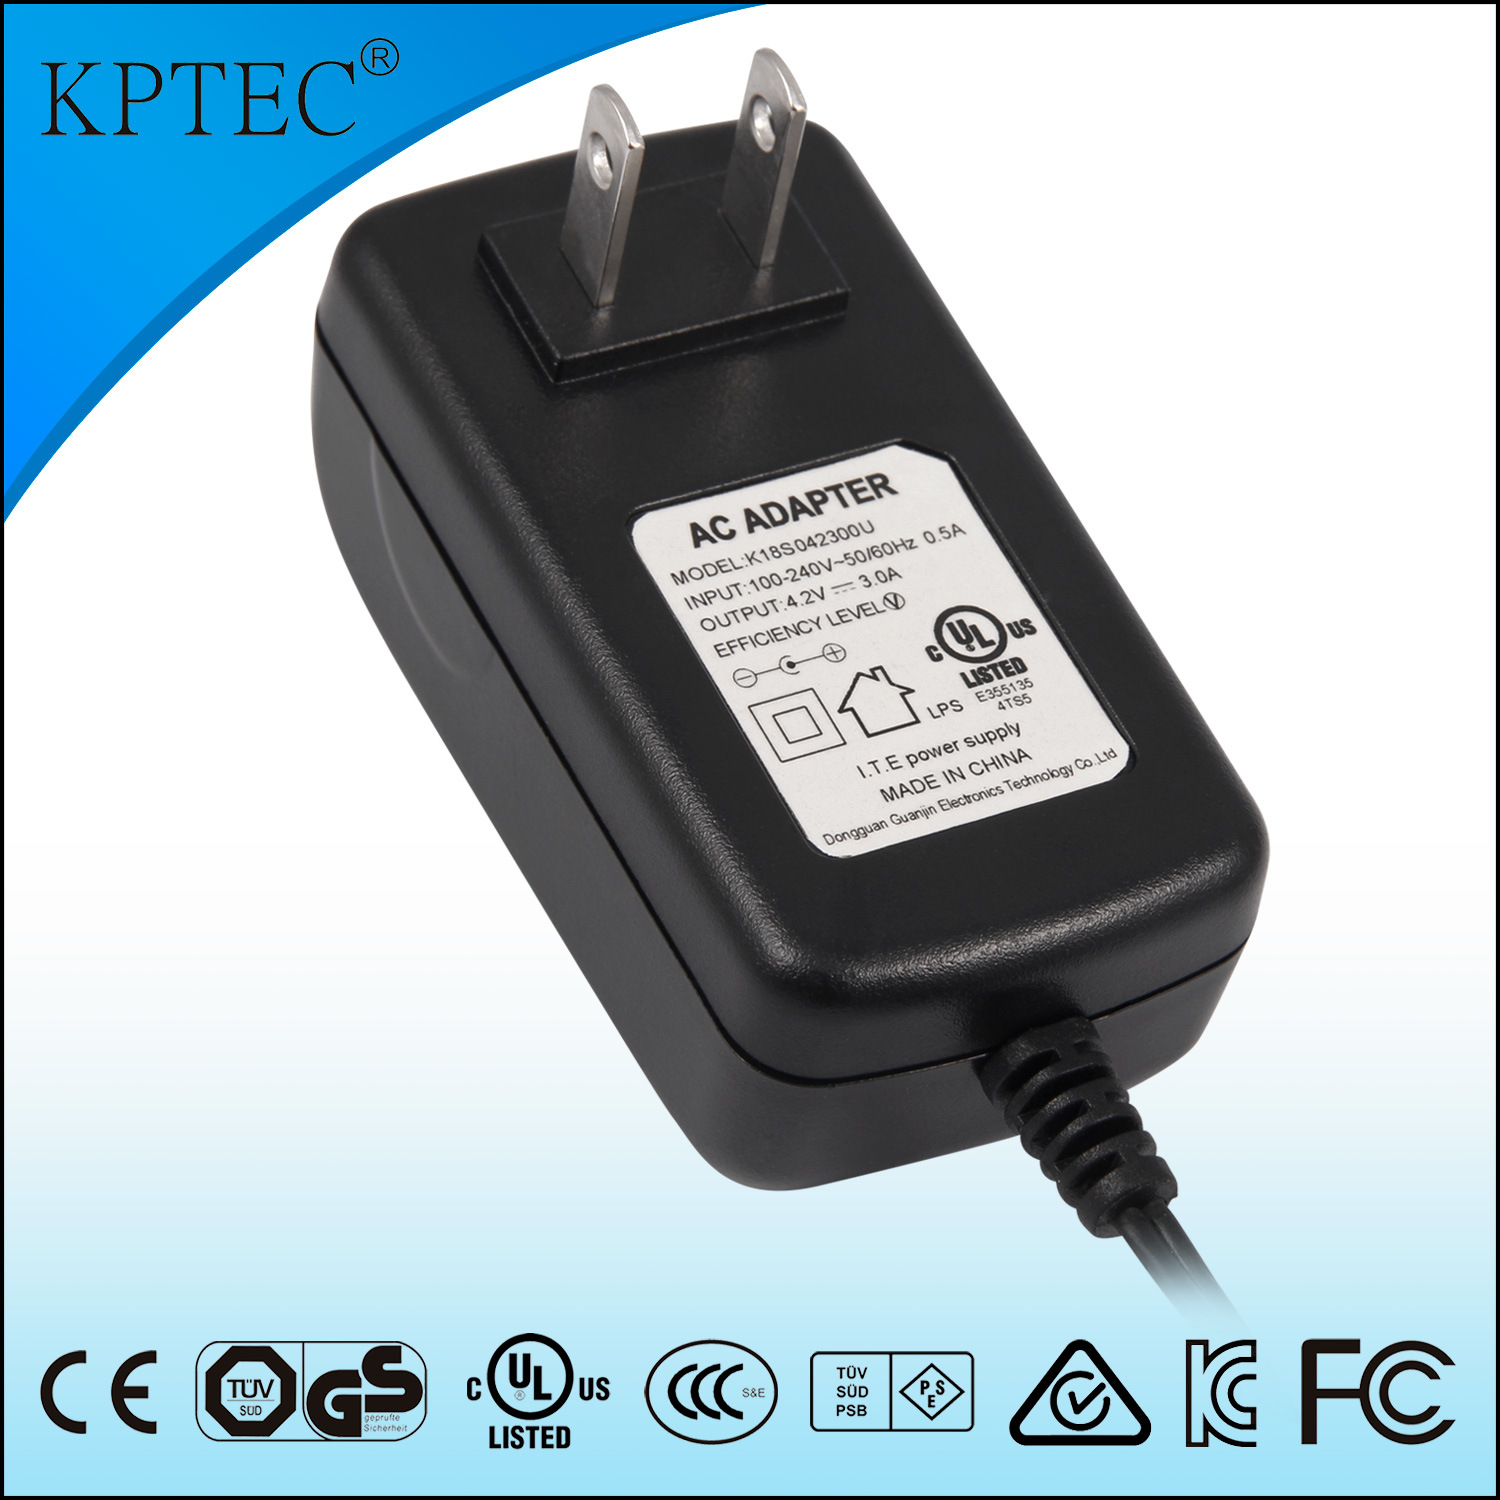 18W 10V 1.8A Power Adapter with USA Standard Plug